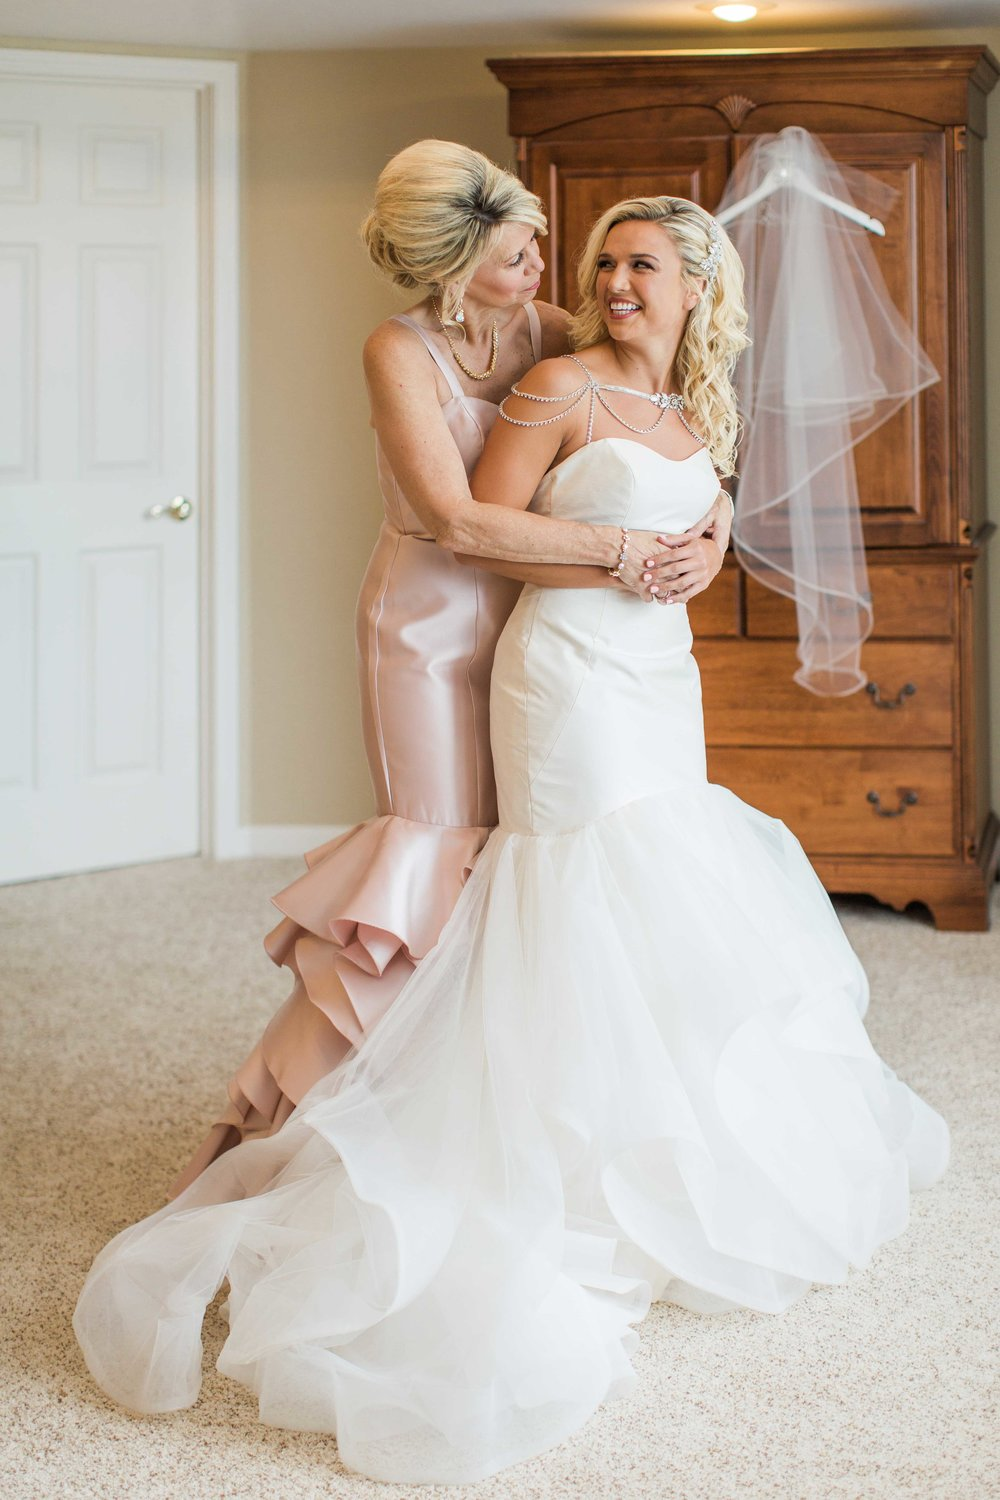 sears_wedding_2017_071---Copy.jpg